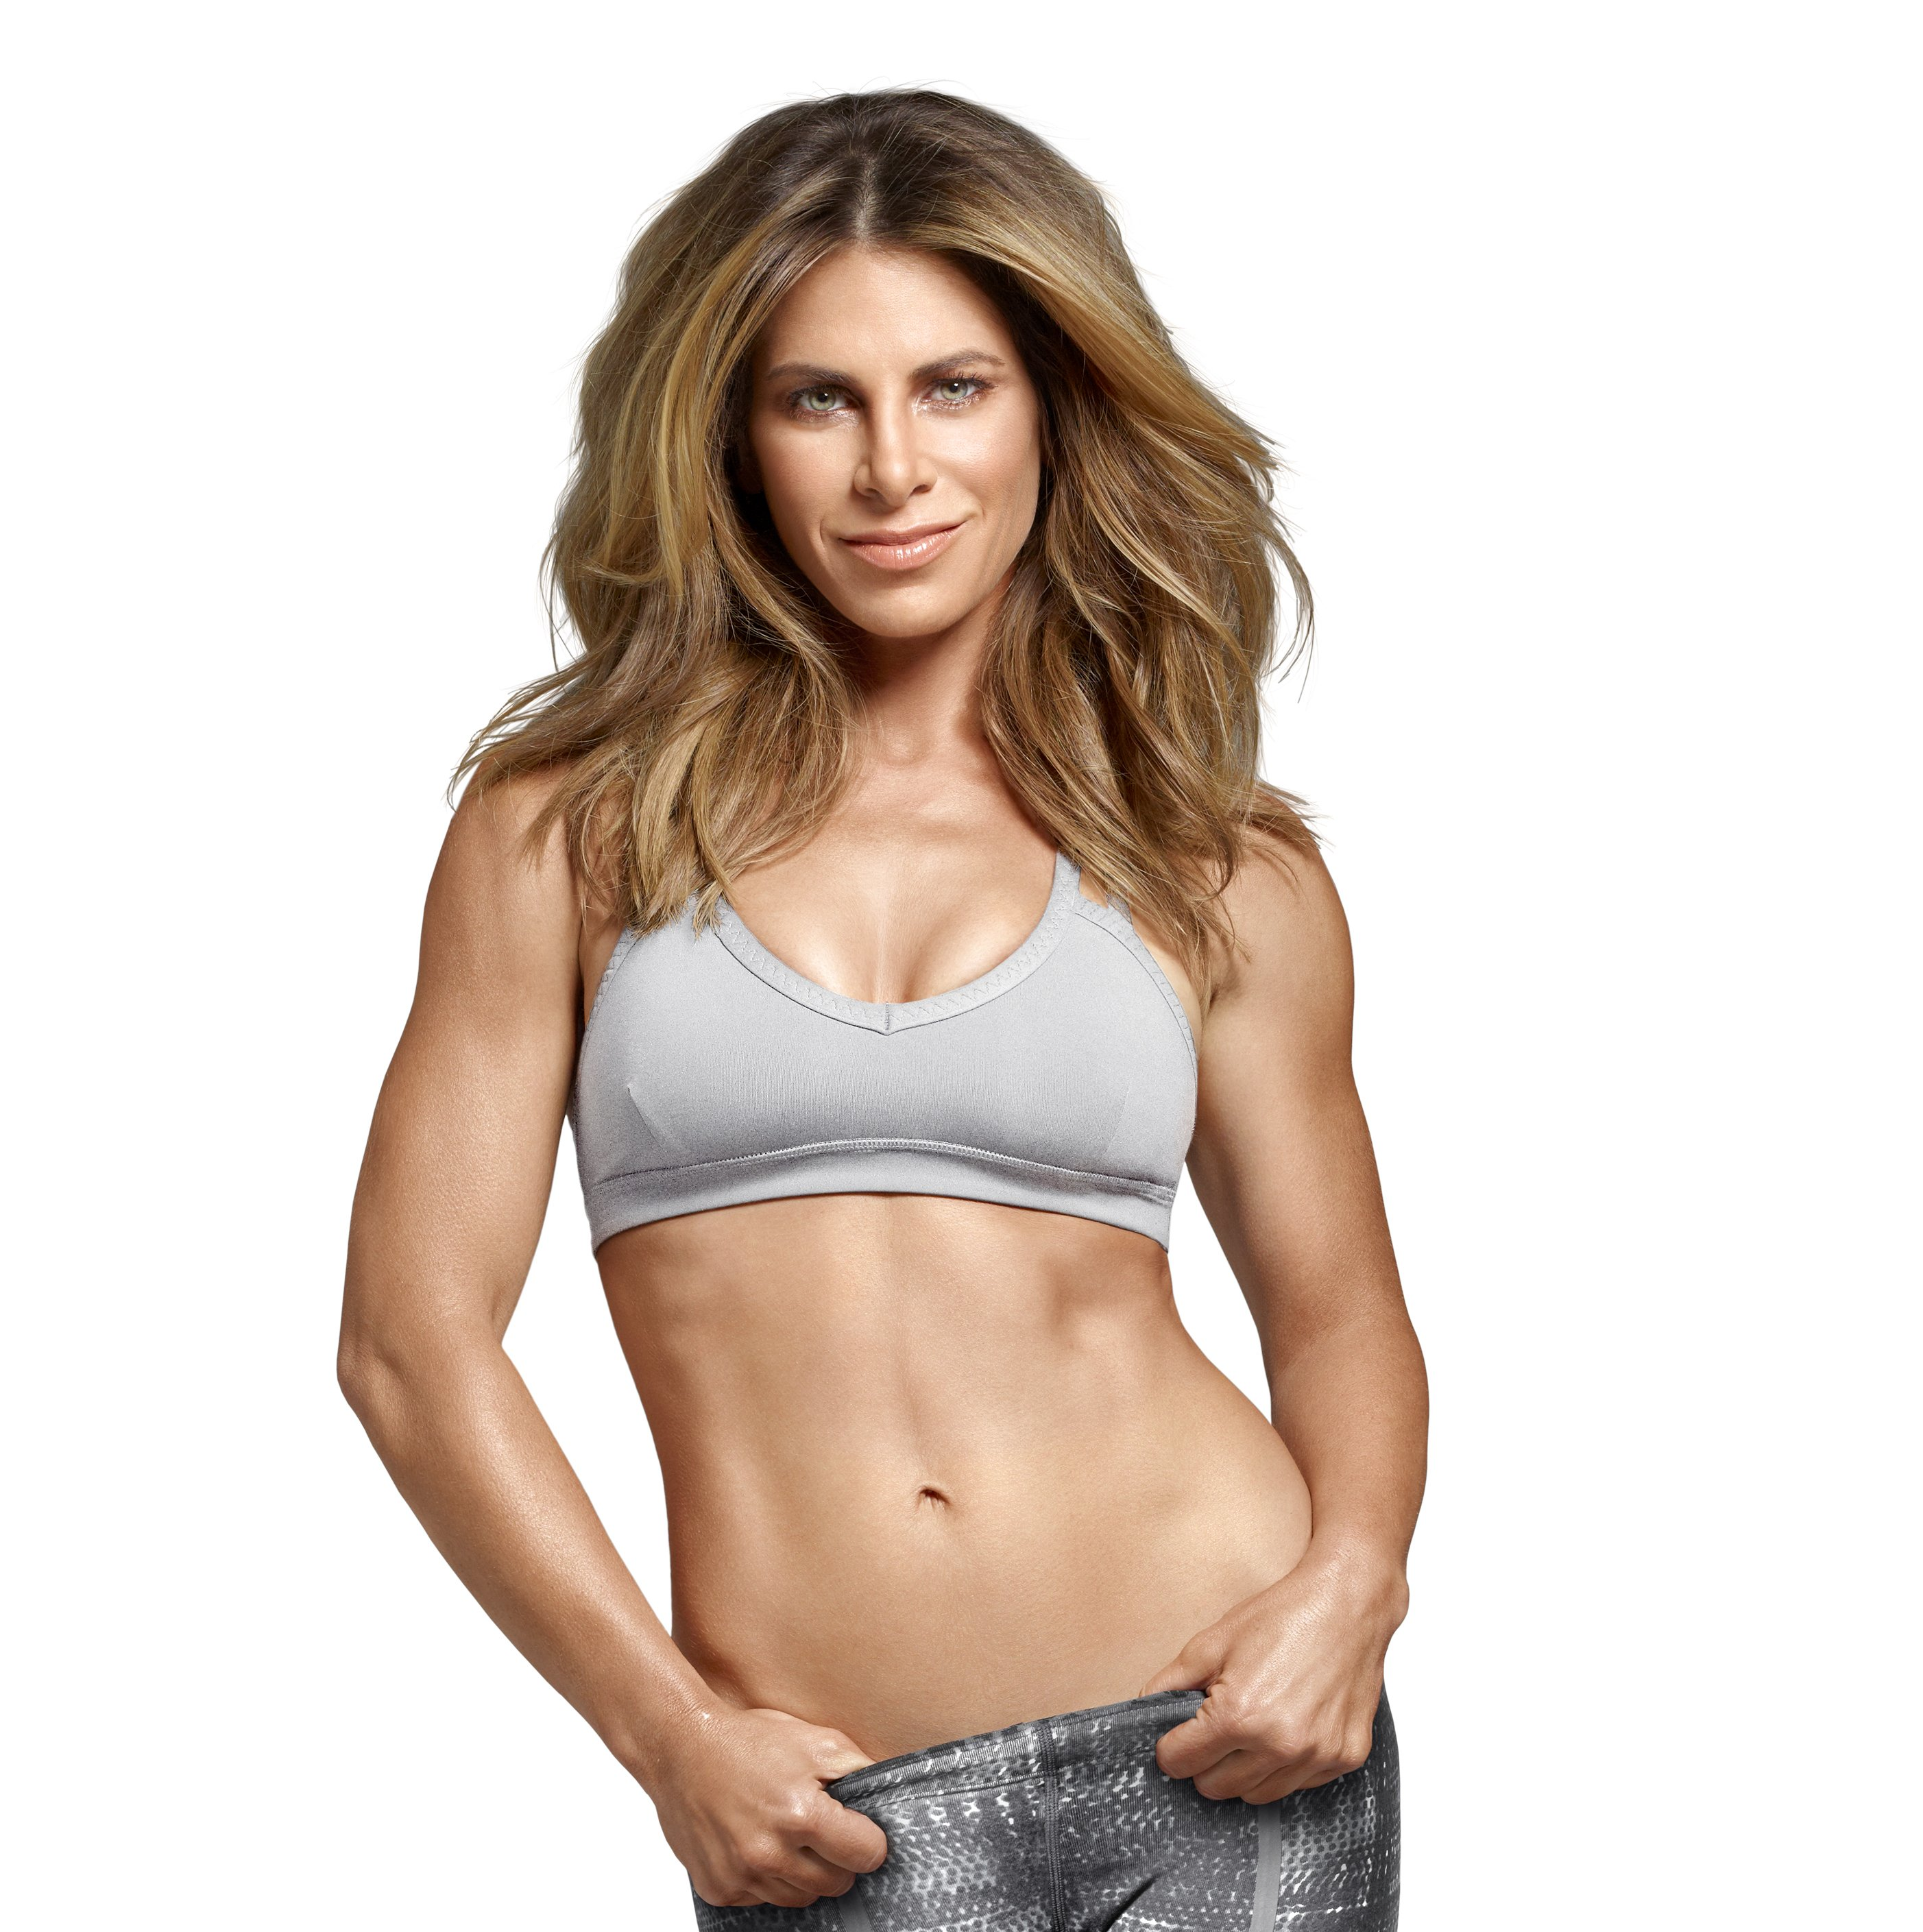 Jillian Michaels the Biggest Loser trainer and new mom shares her weight loss tips and easy everyday strategies for keeping the pounds off